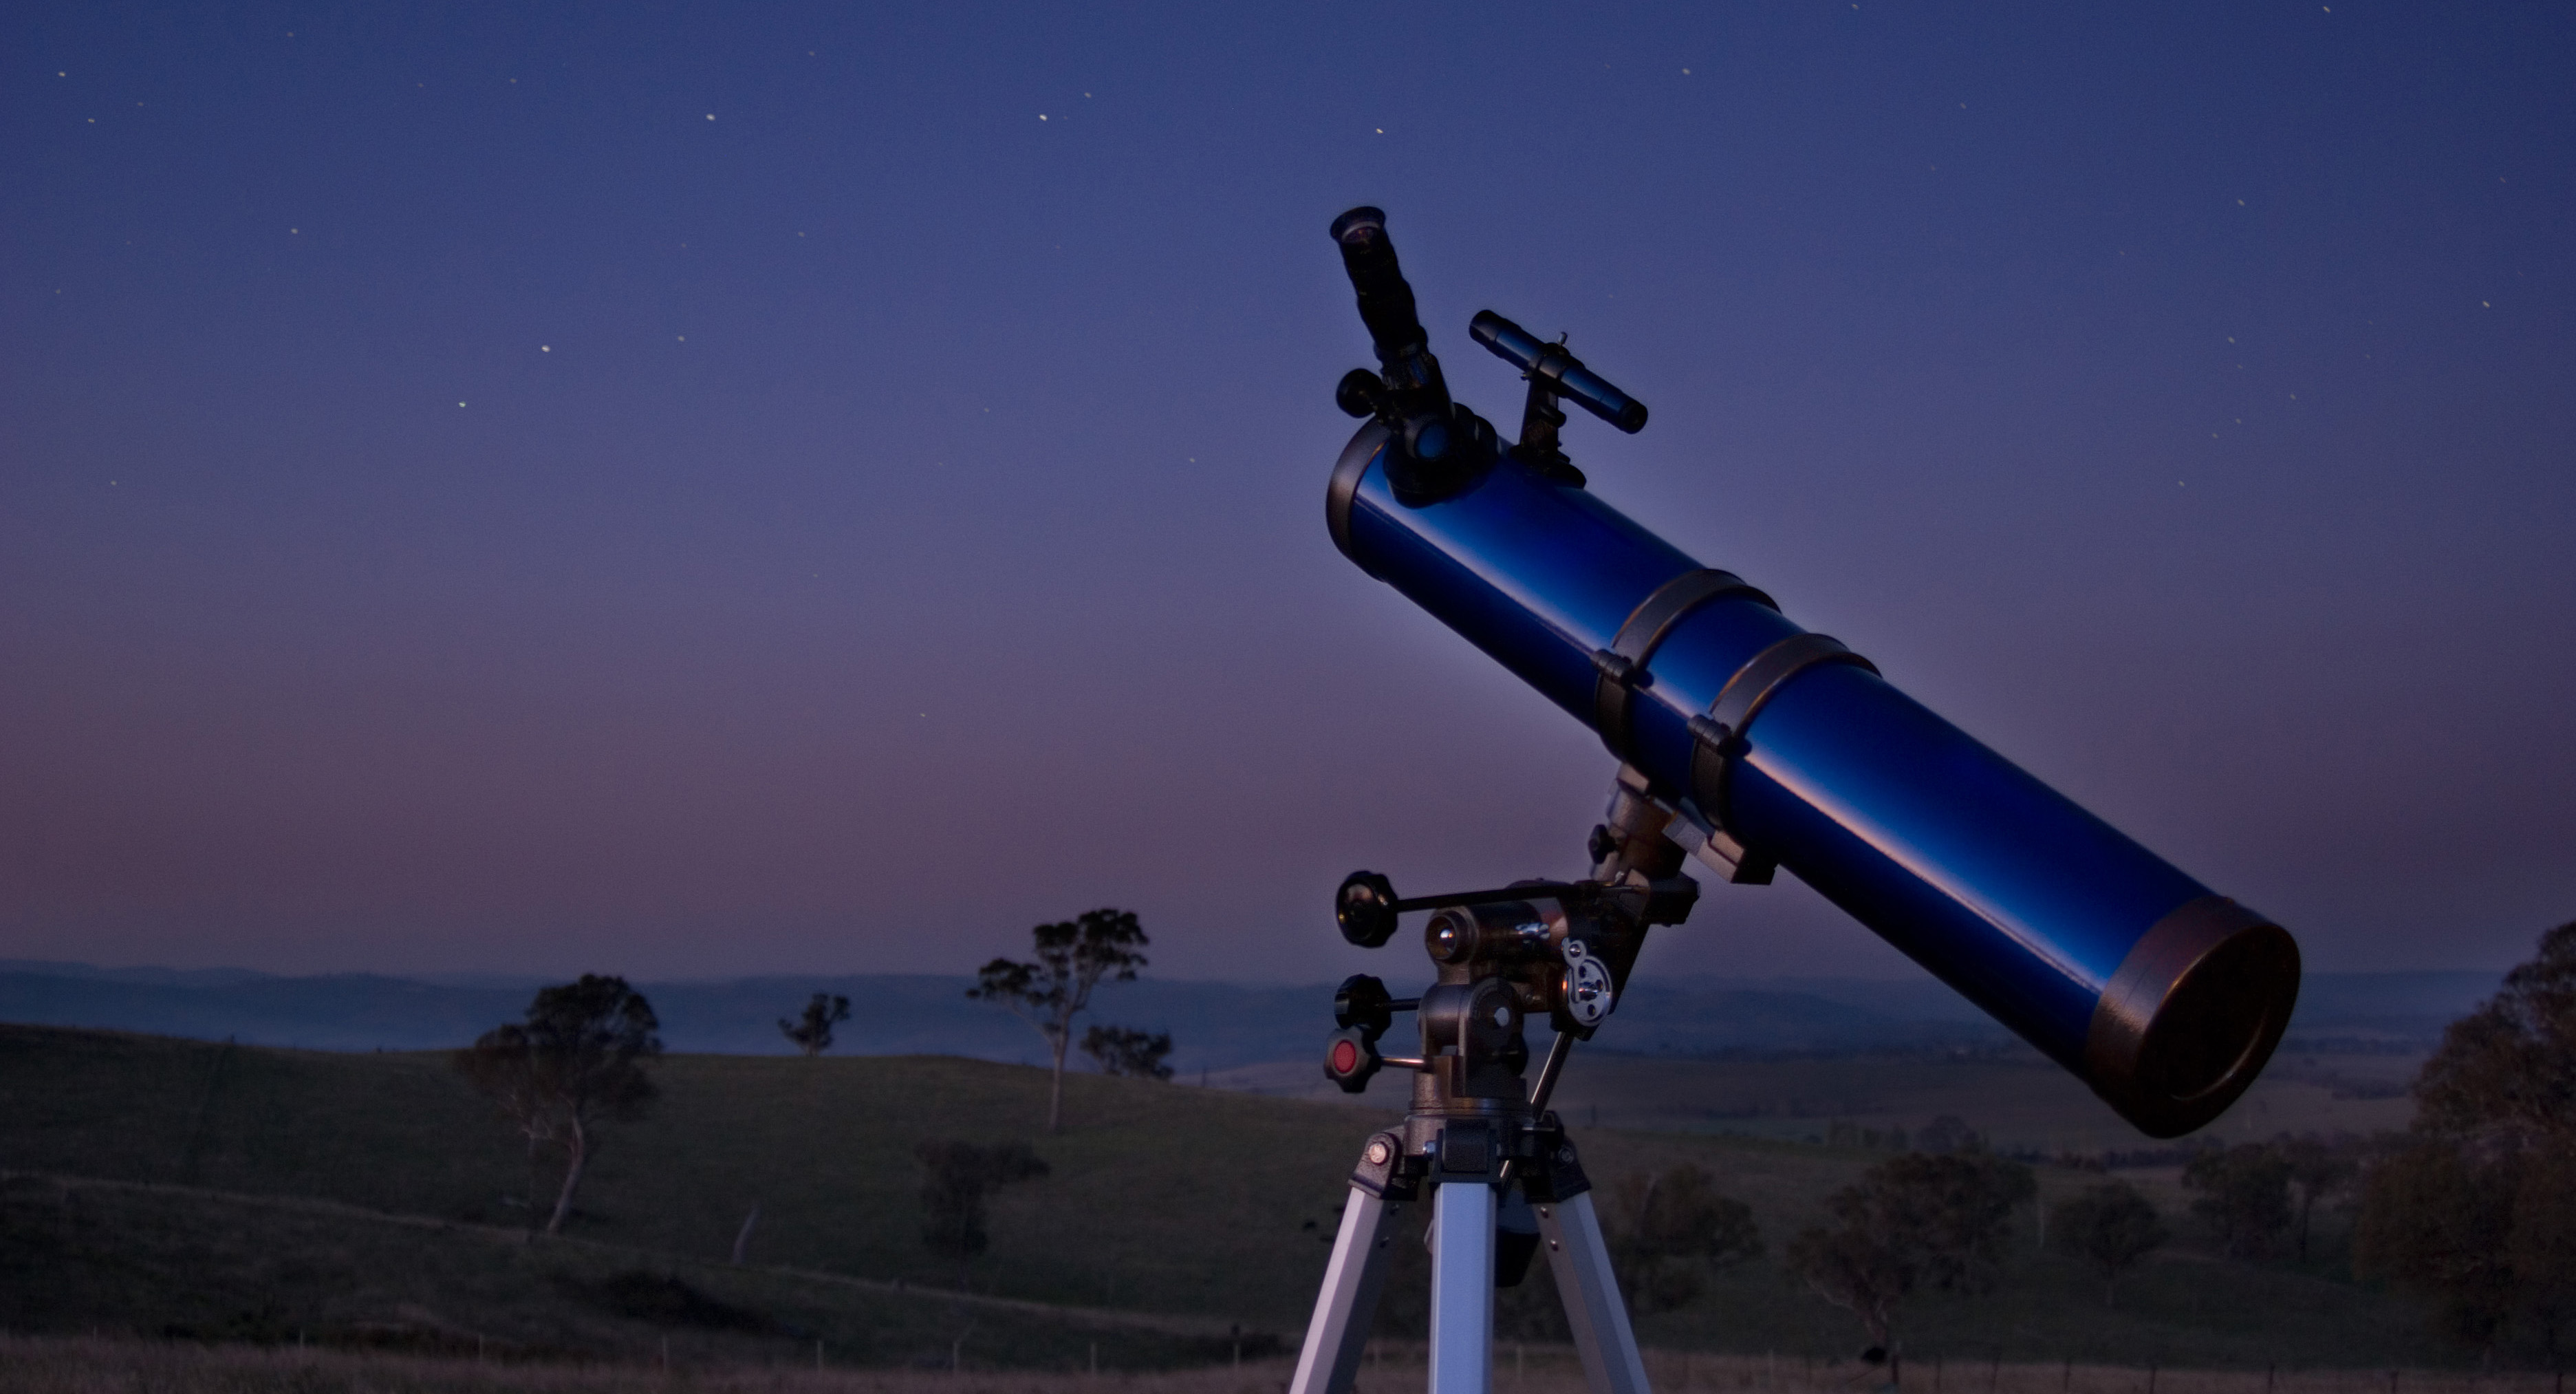 Intro To Stargazing & Skywatching